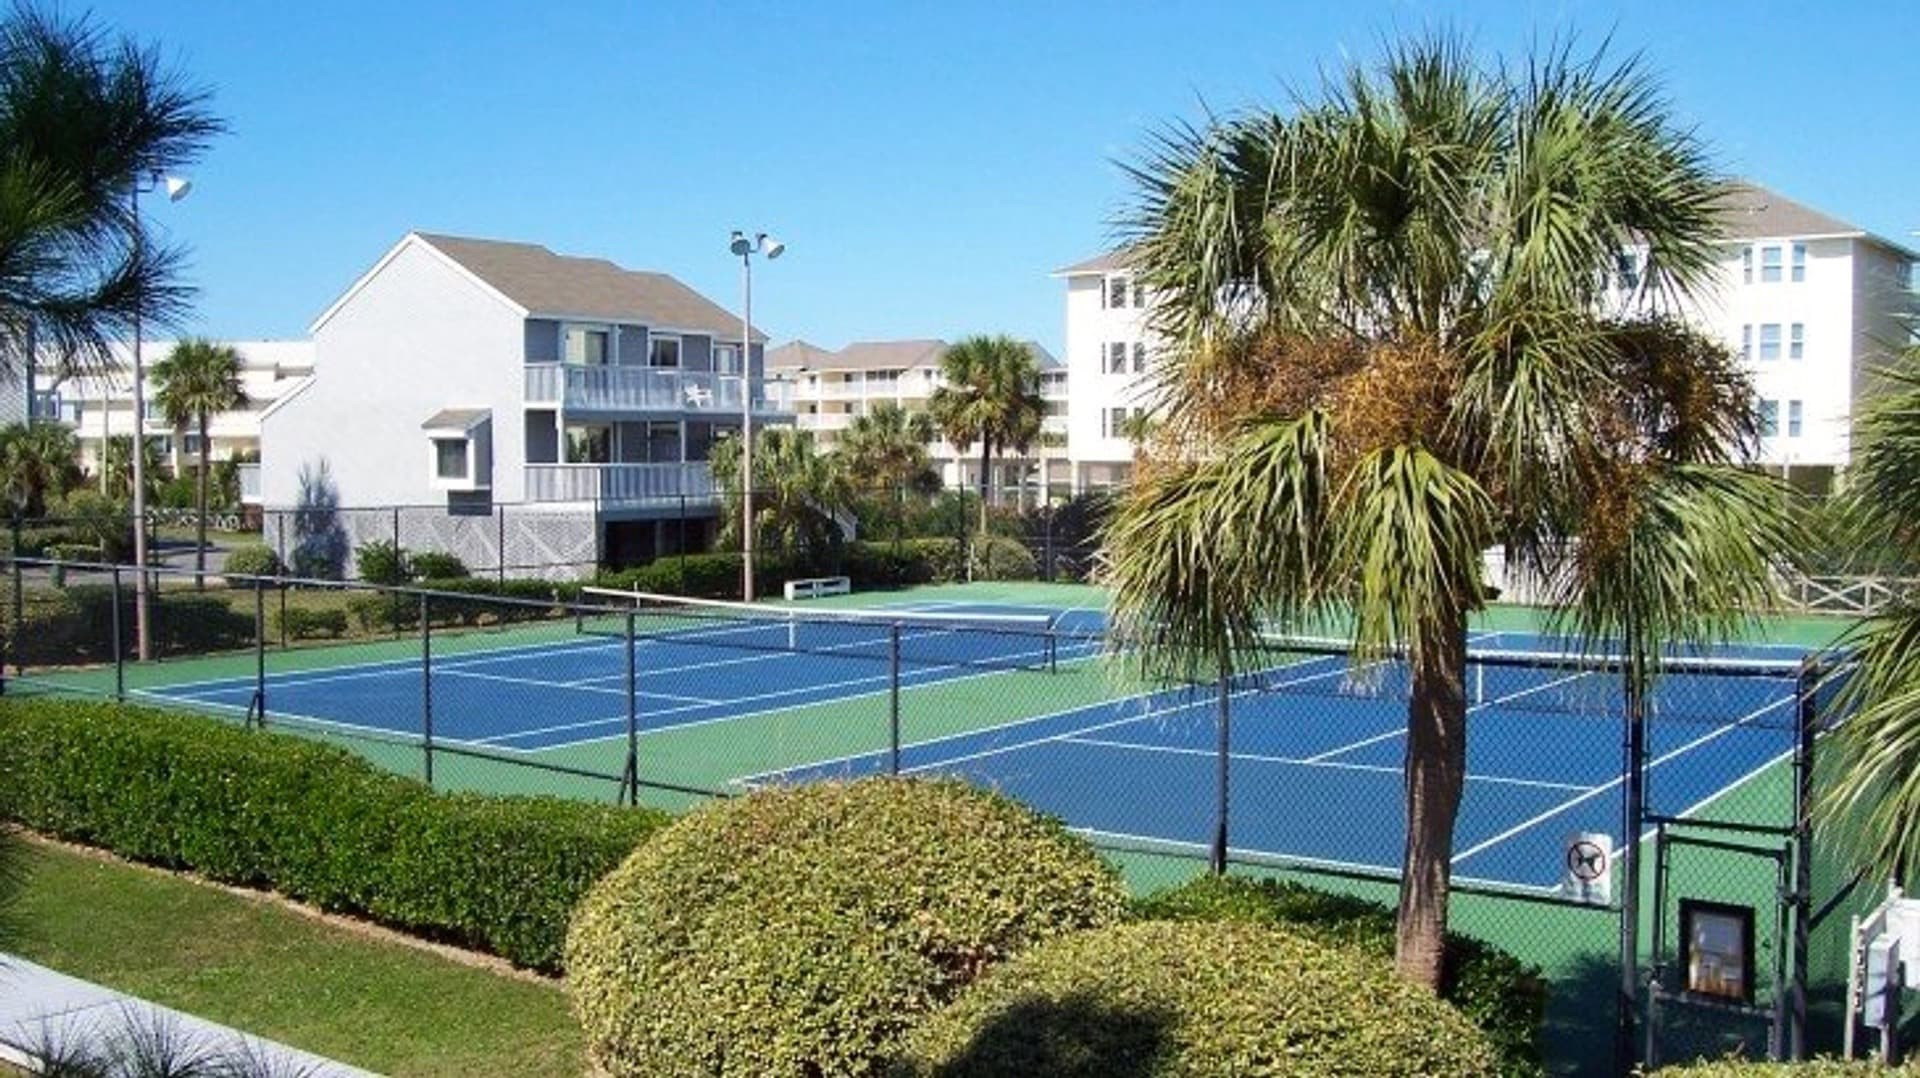 BD tennis courts